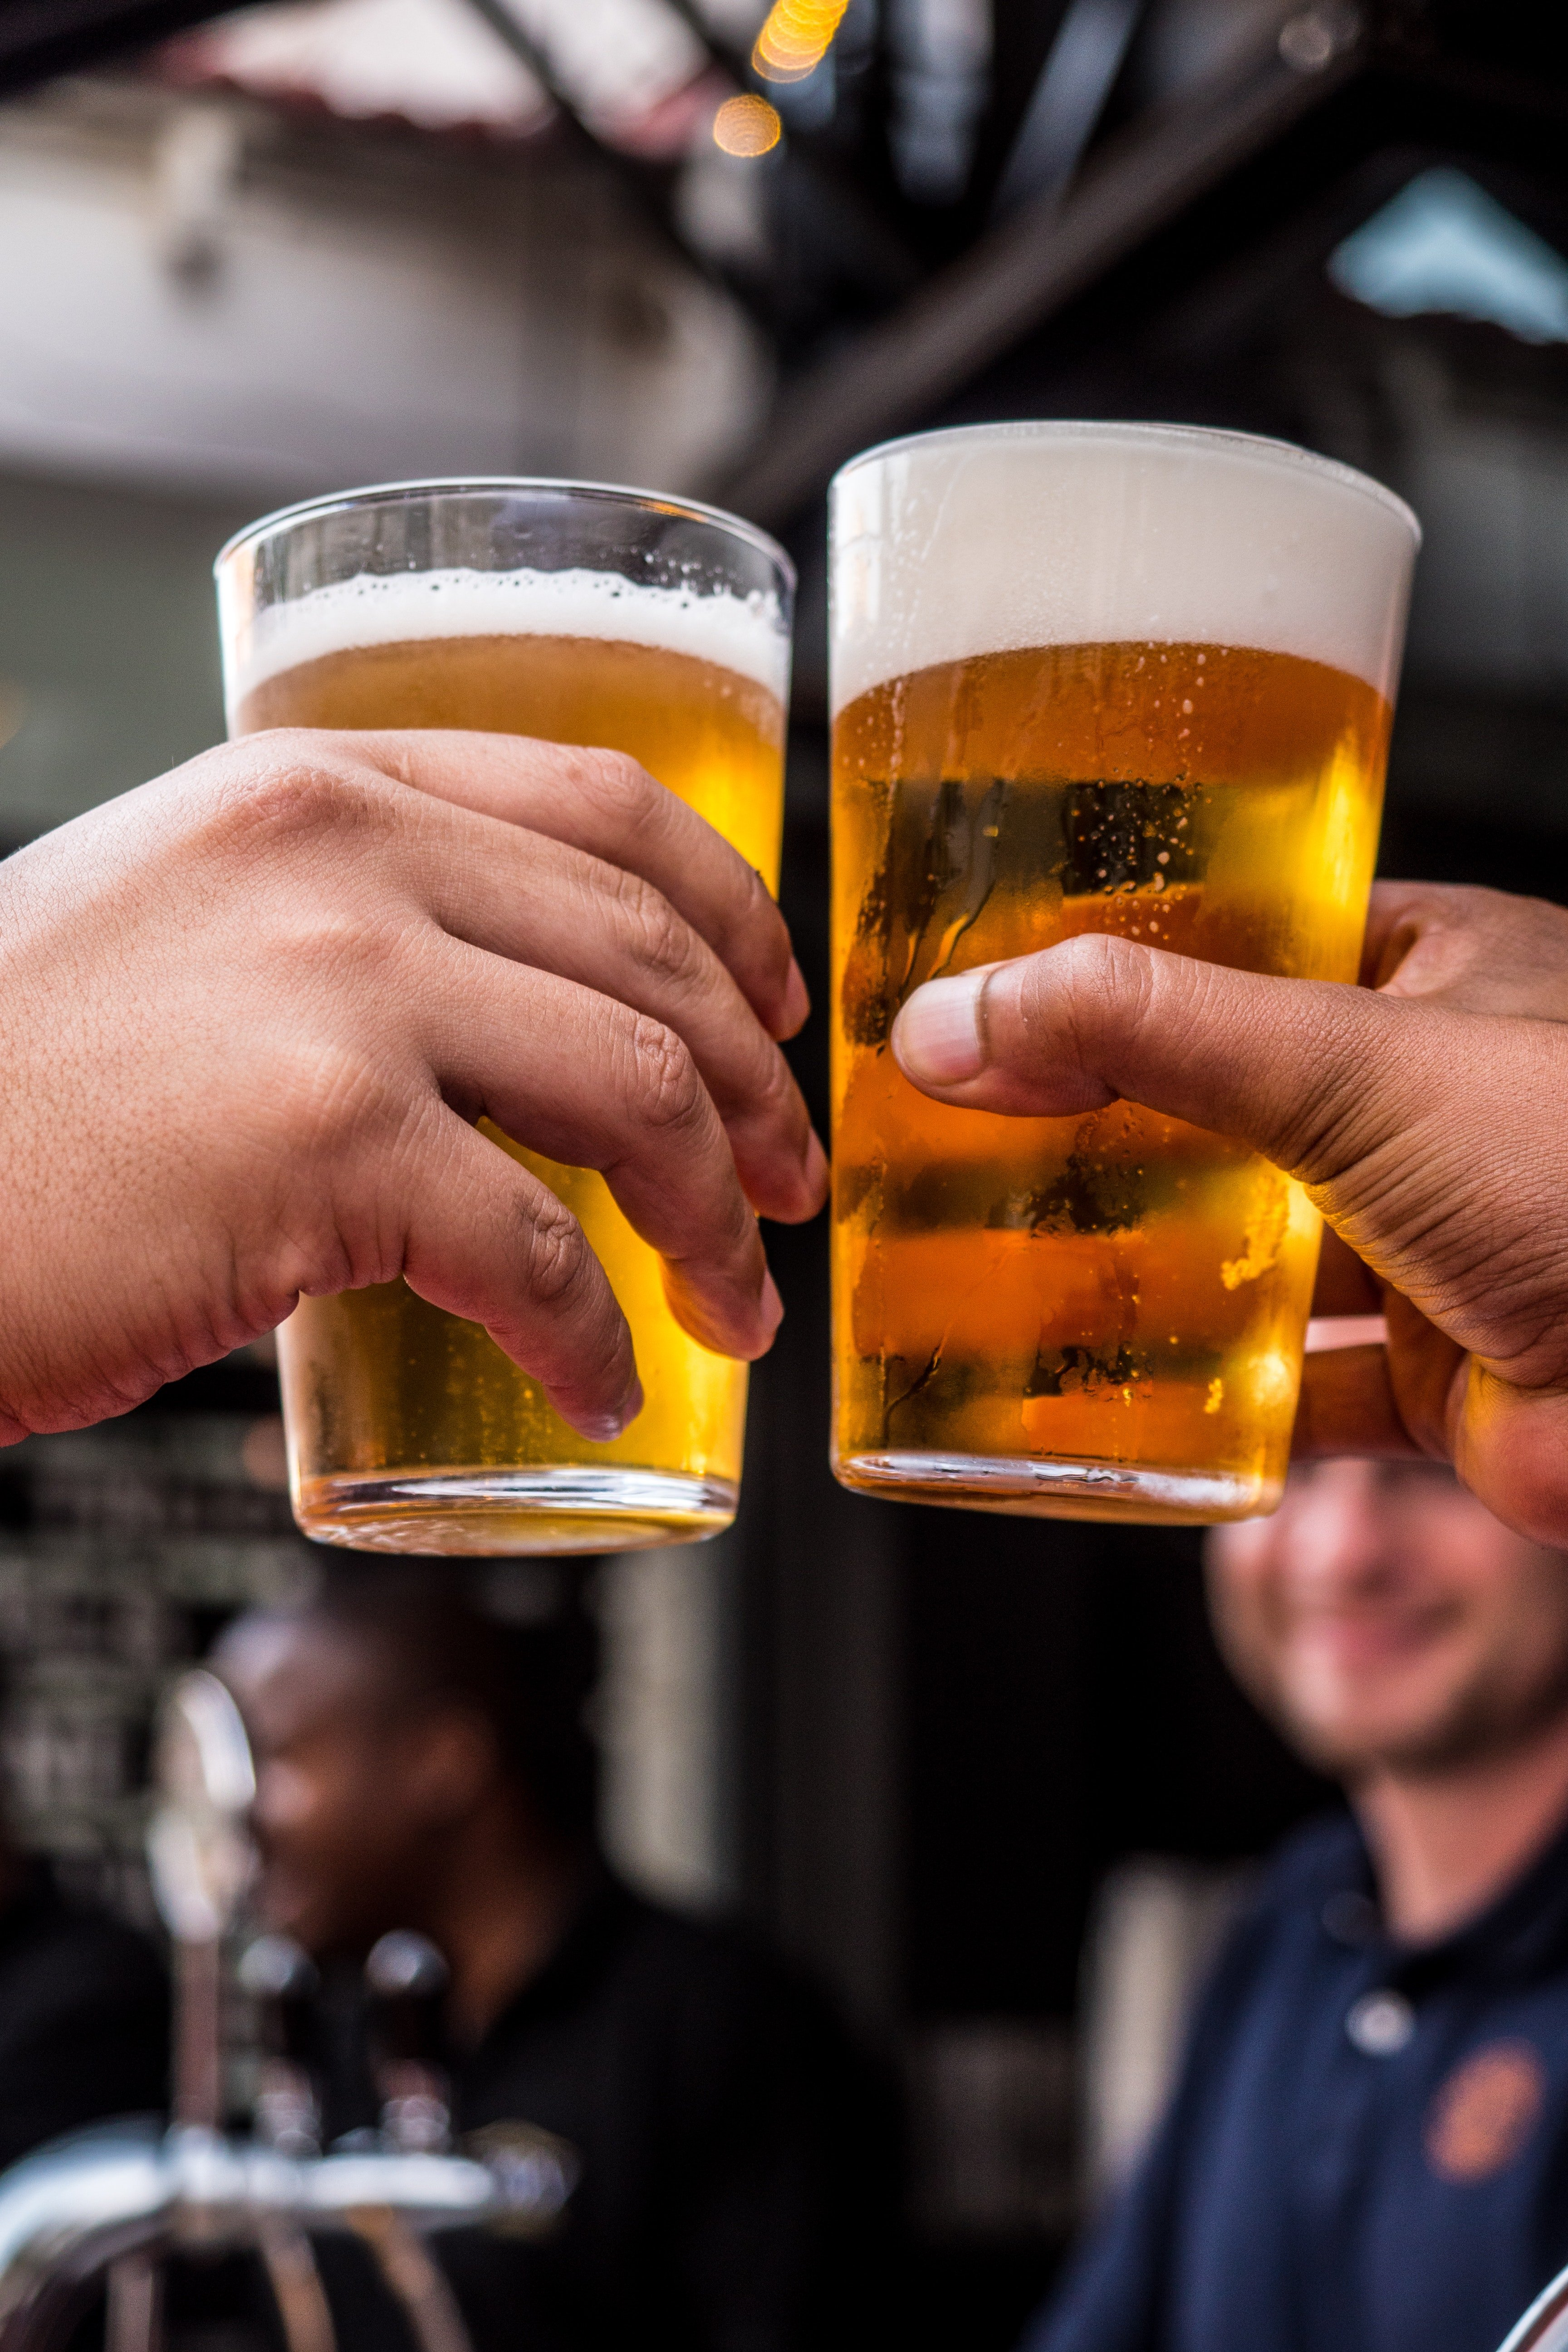 """""""Bottoms up, man,"""" said one friend to the other. They then began downing drinks. 